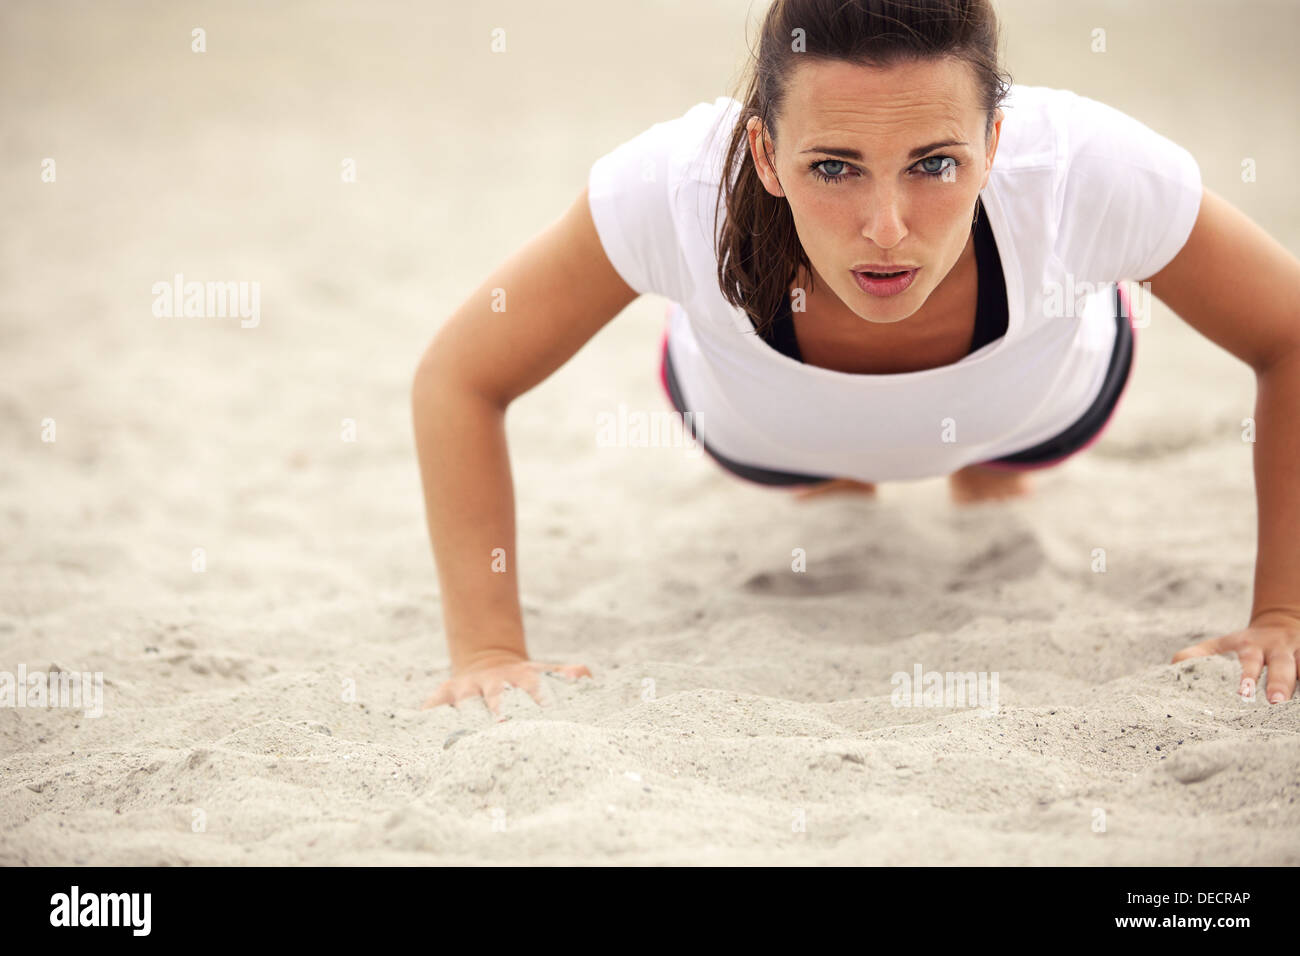 Push-ups fitness woman doing pushups outside on beach. Fit female sport model girl training crossfit outdoors. Caucasian athlete - Stock Image